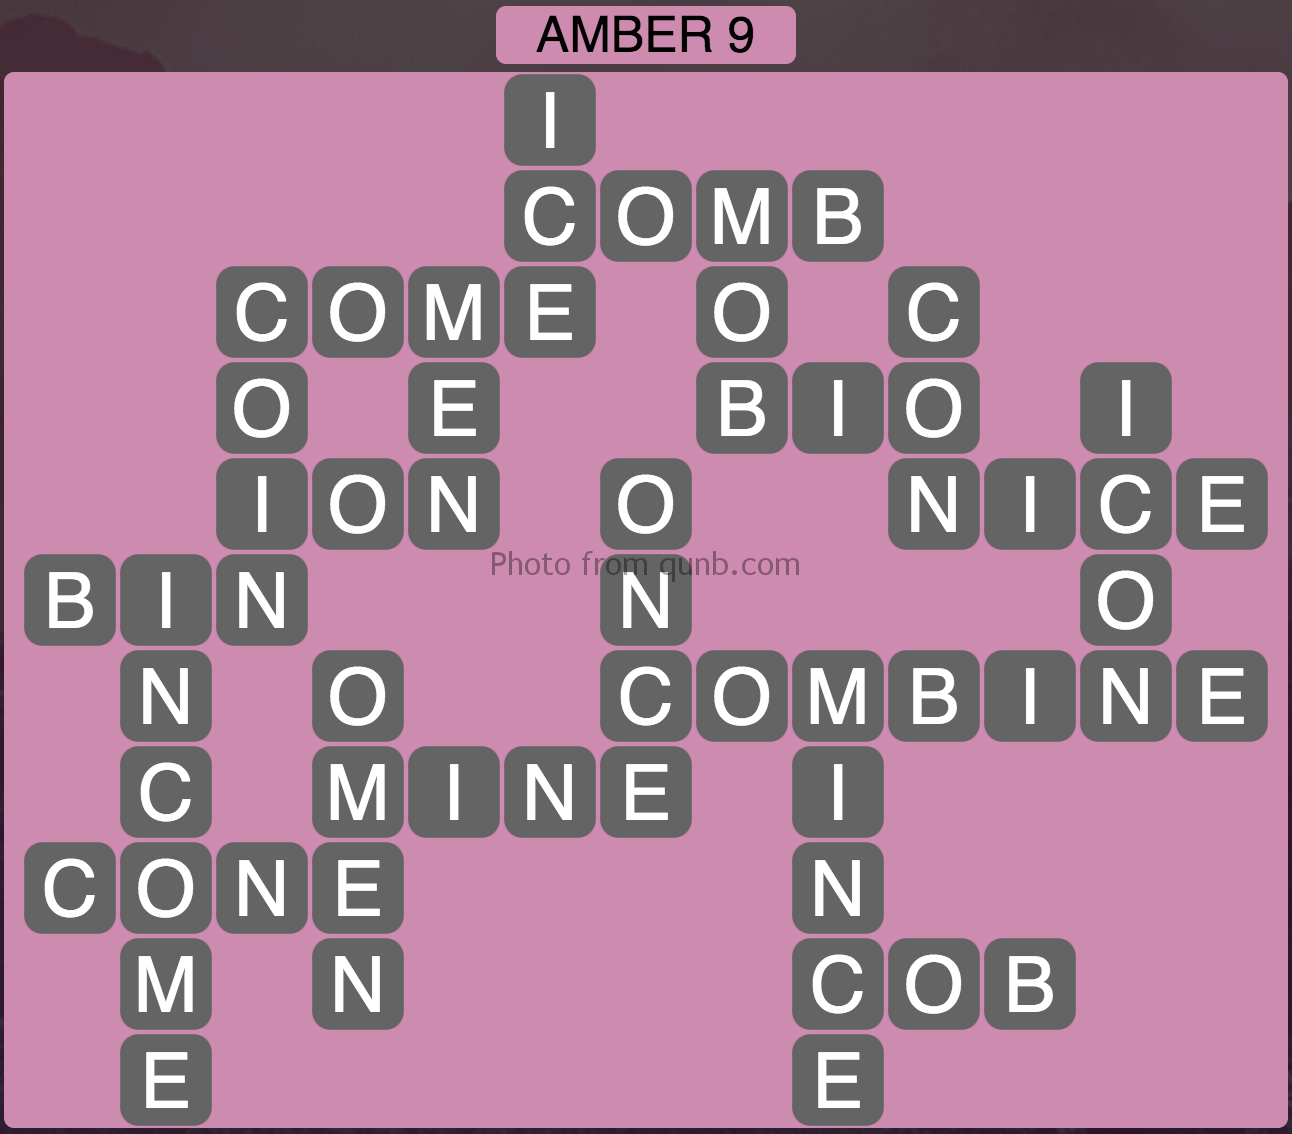 Wordscapes Amber 9 (Level 953) Answers